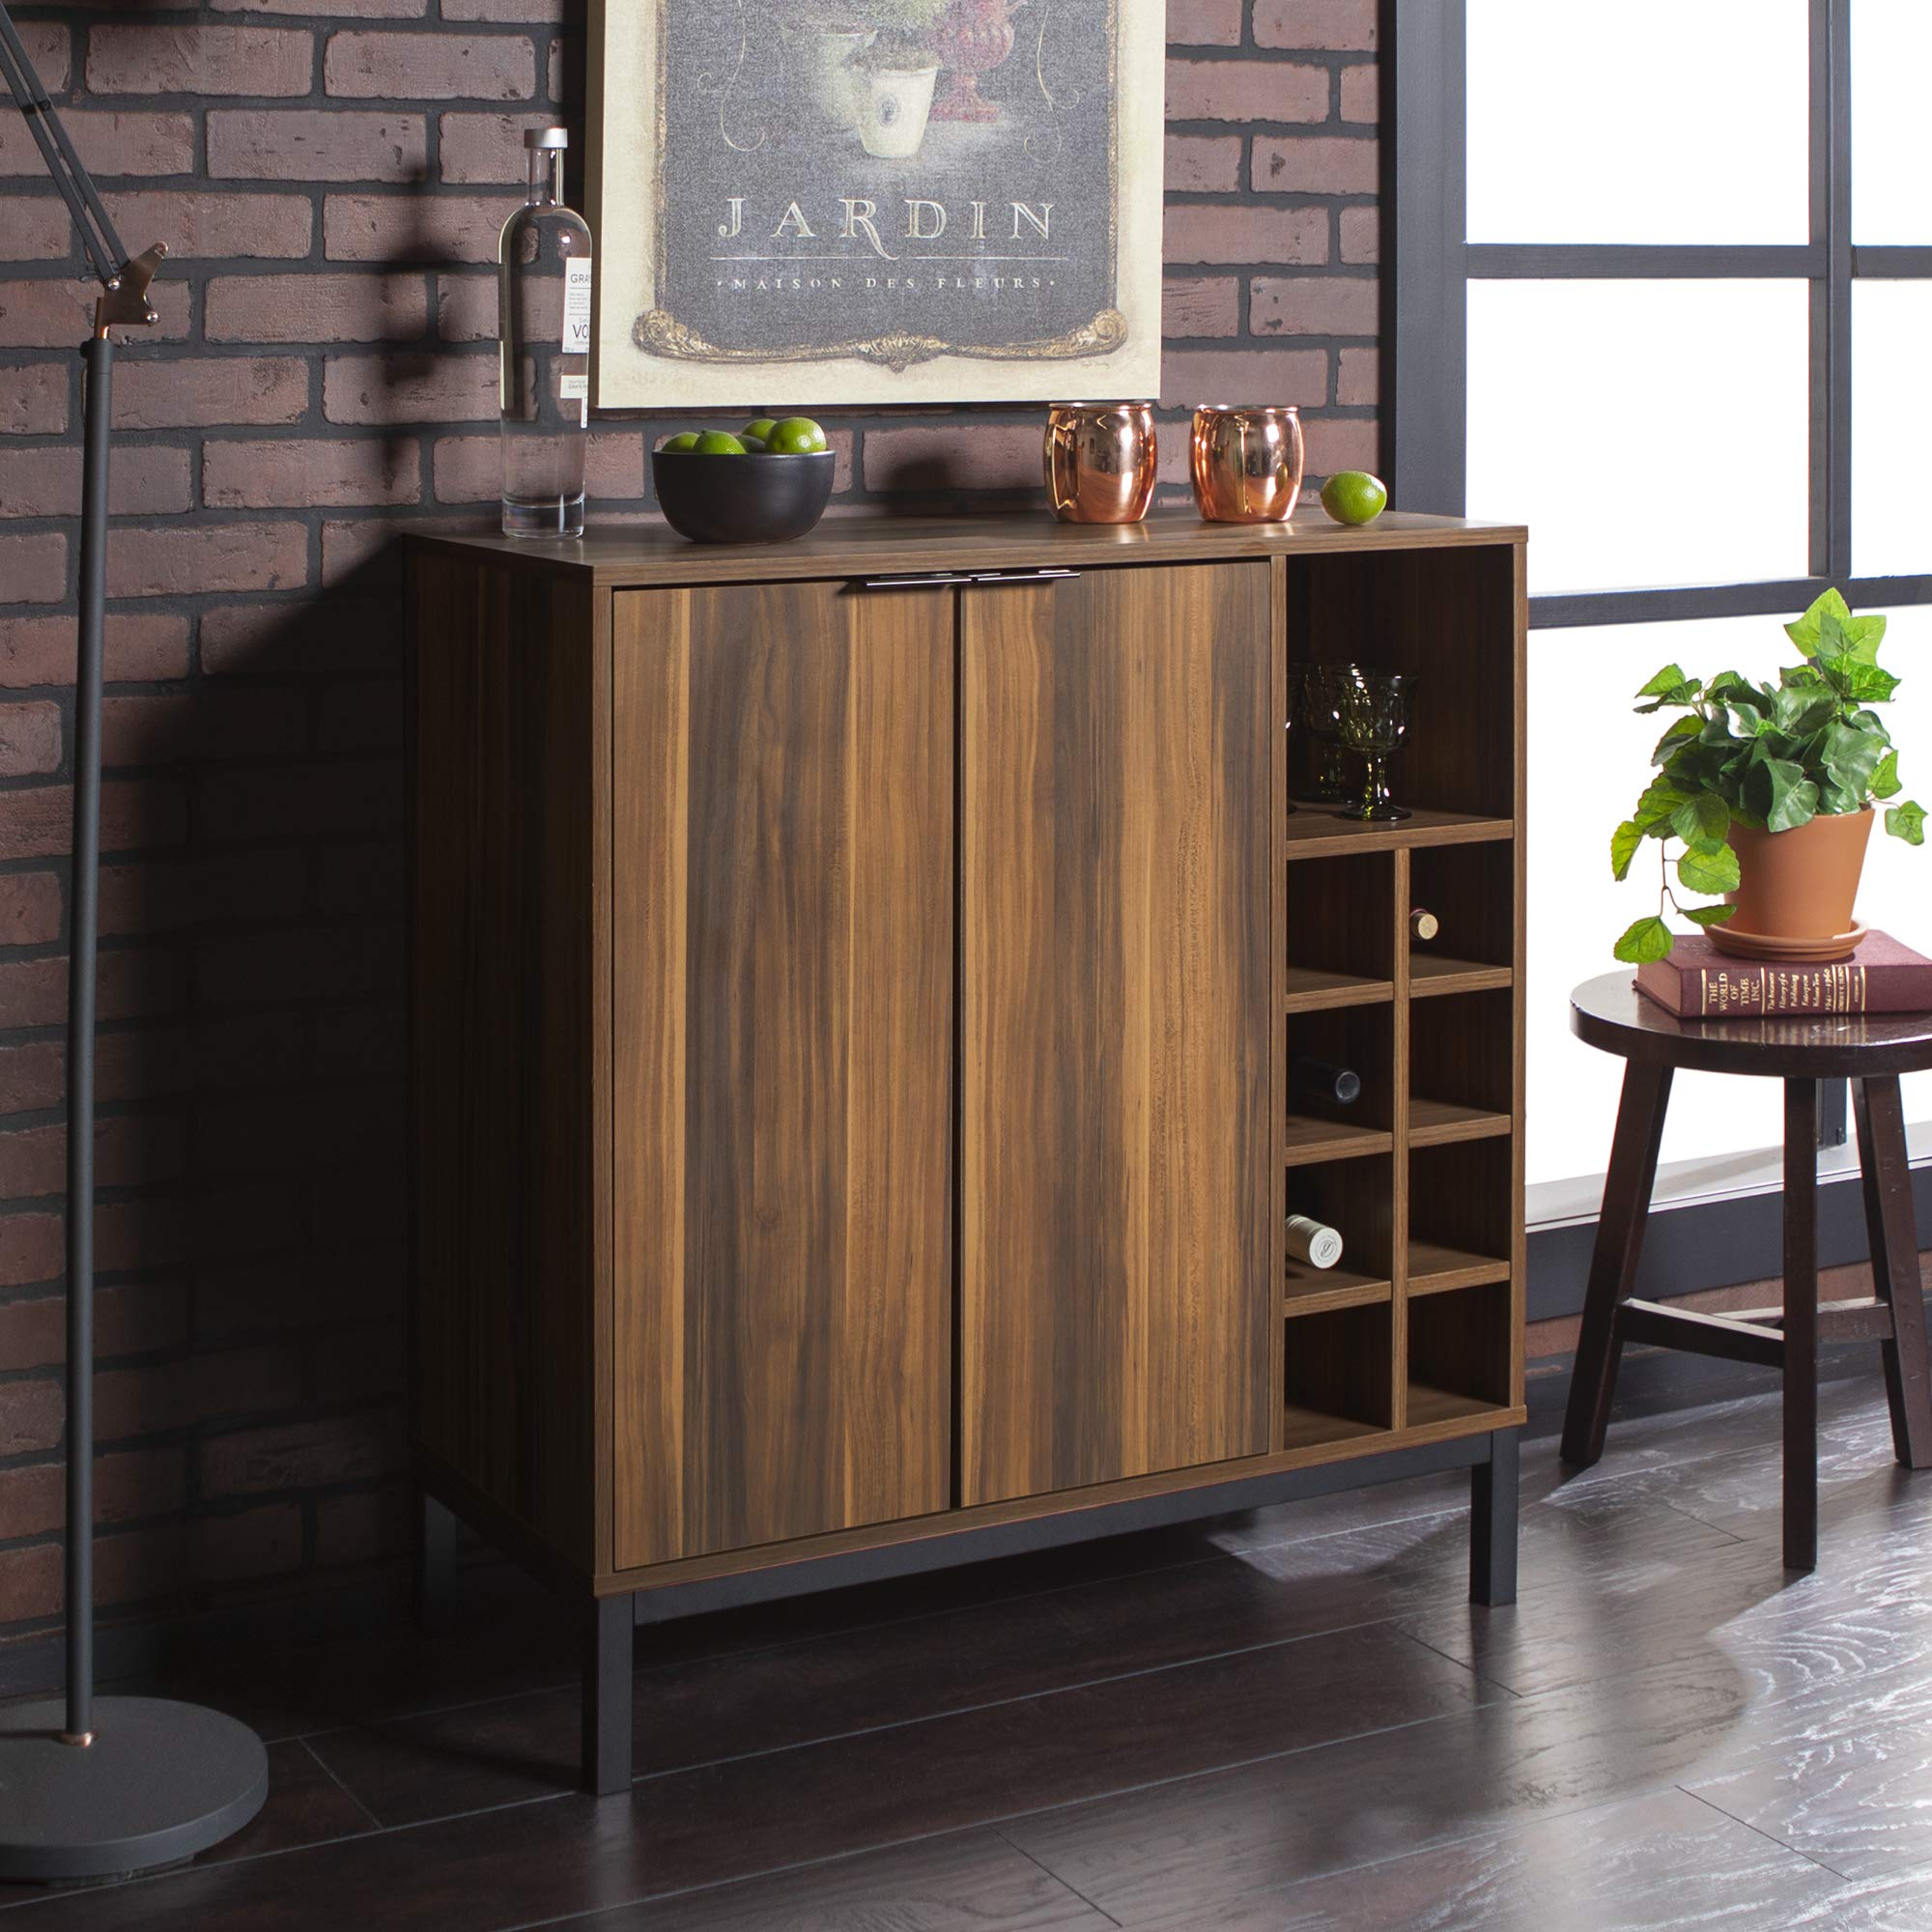 WE Furniture Bar Cabinet w/ Wine Storage, 34'' - Teak by WE Furniture